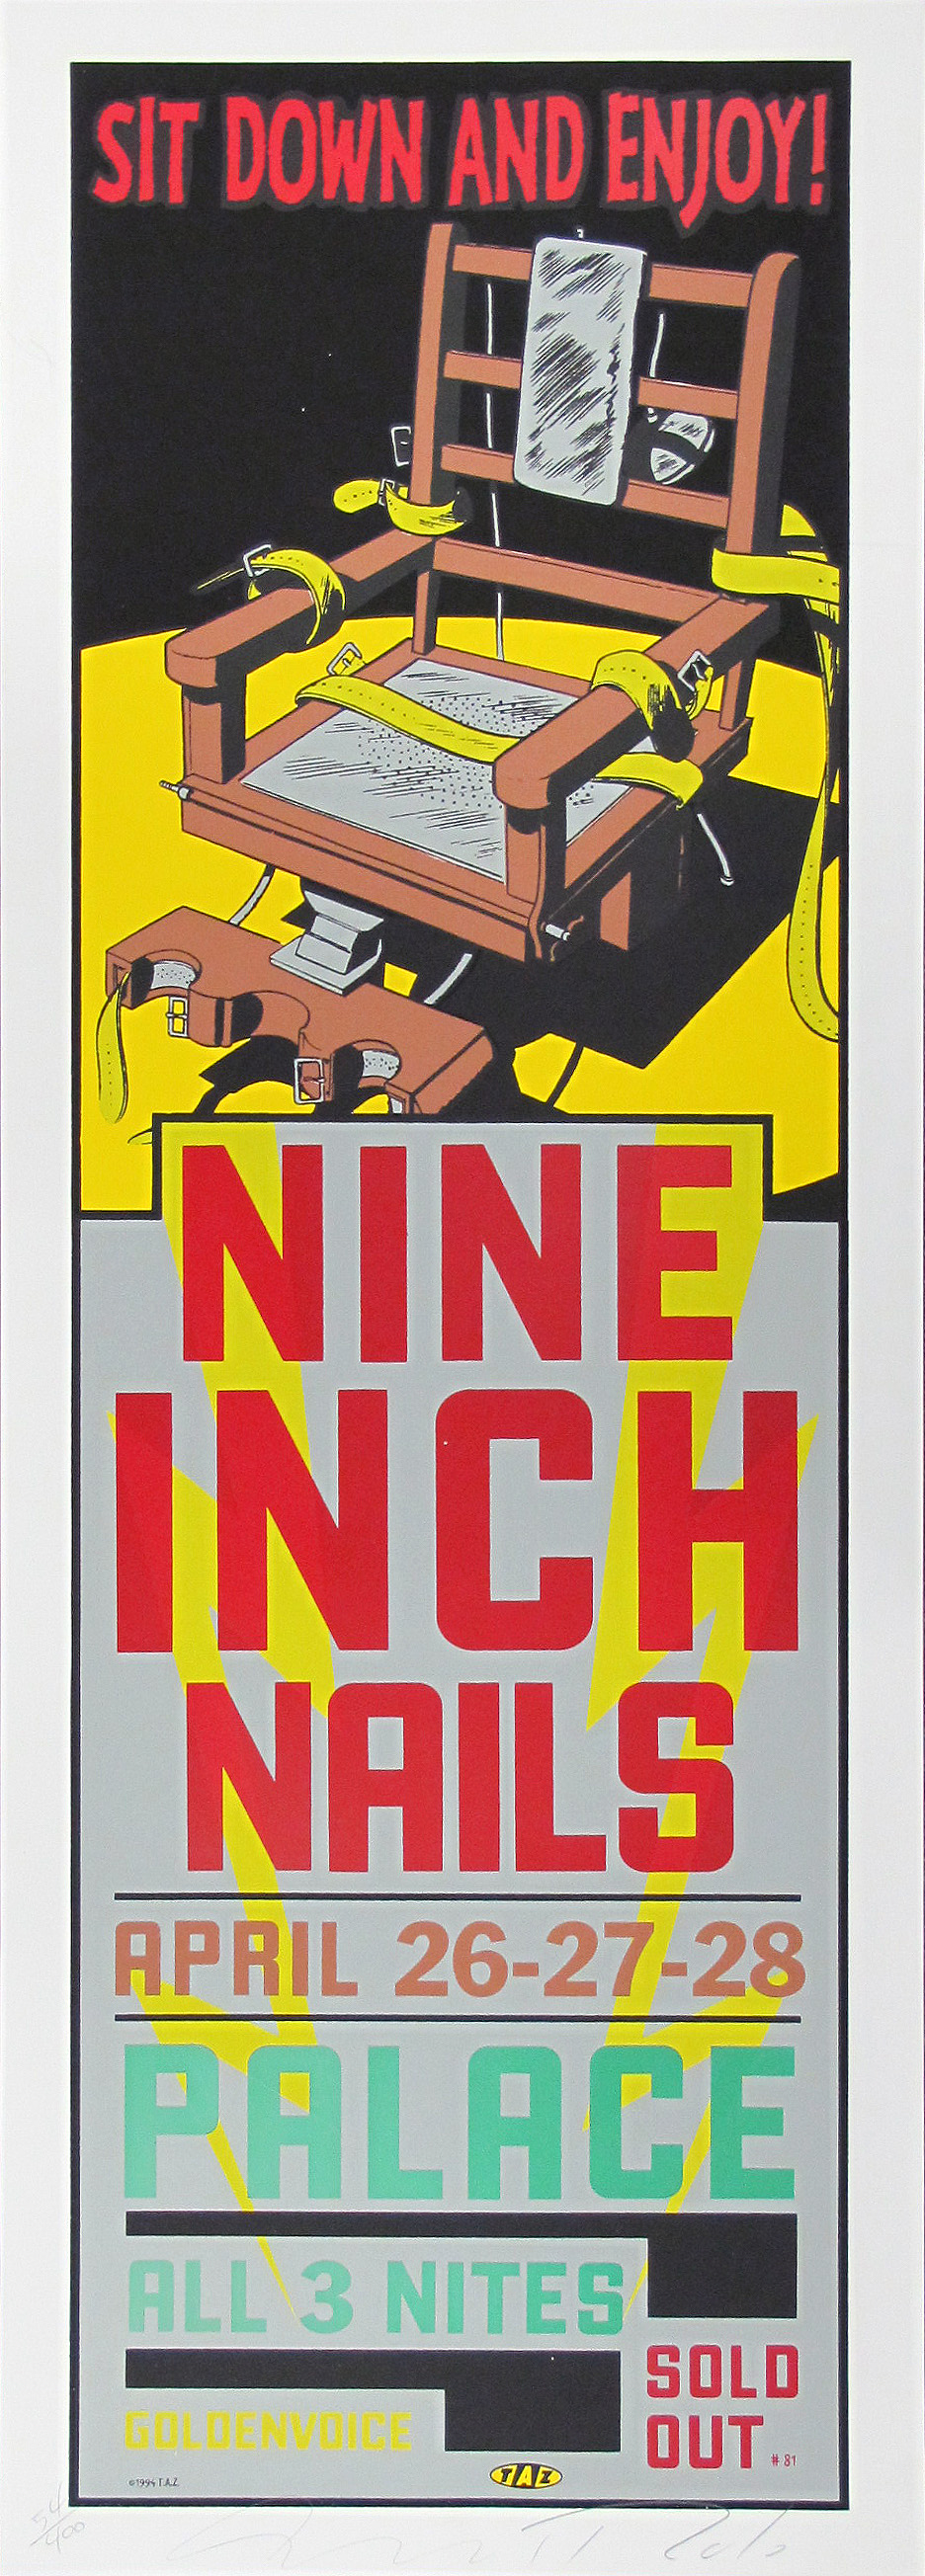 Nine Inch Nails Concert Poster | Limited Runs